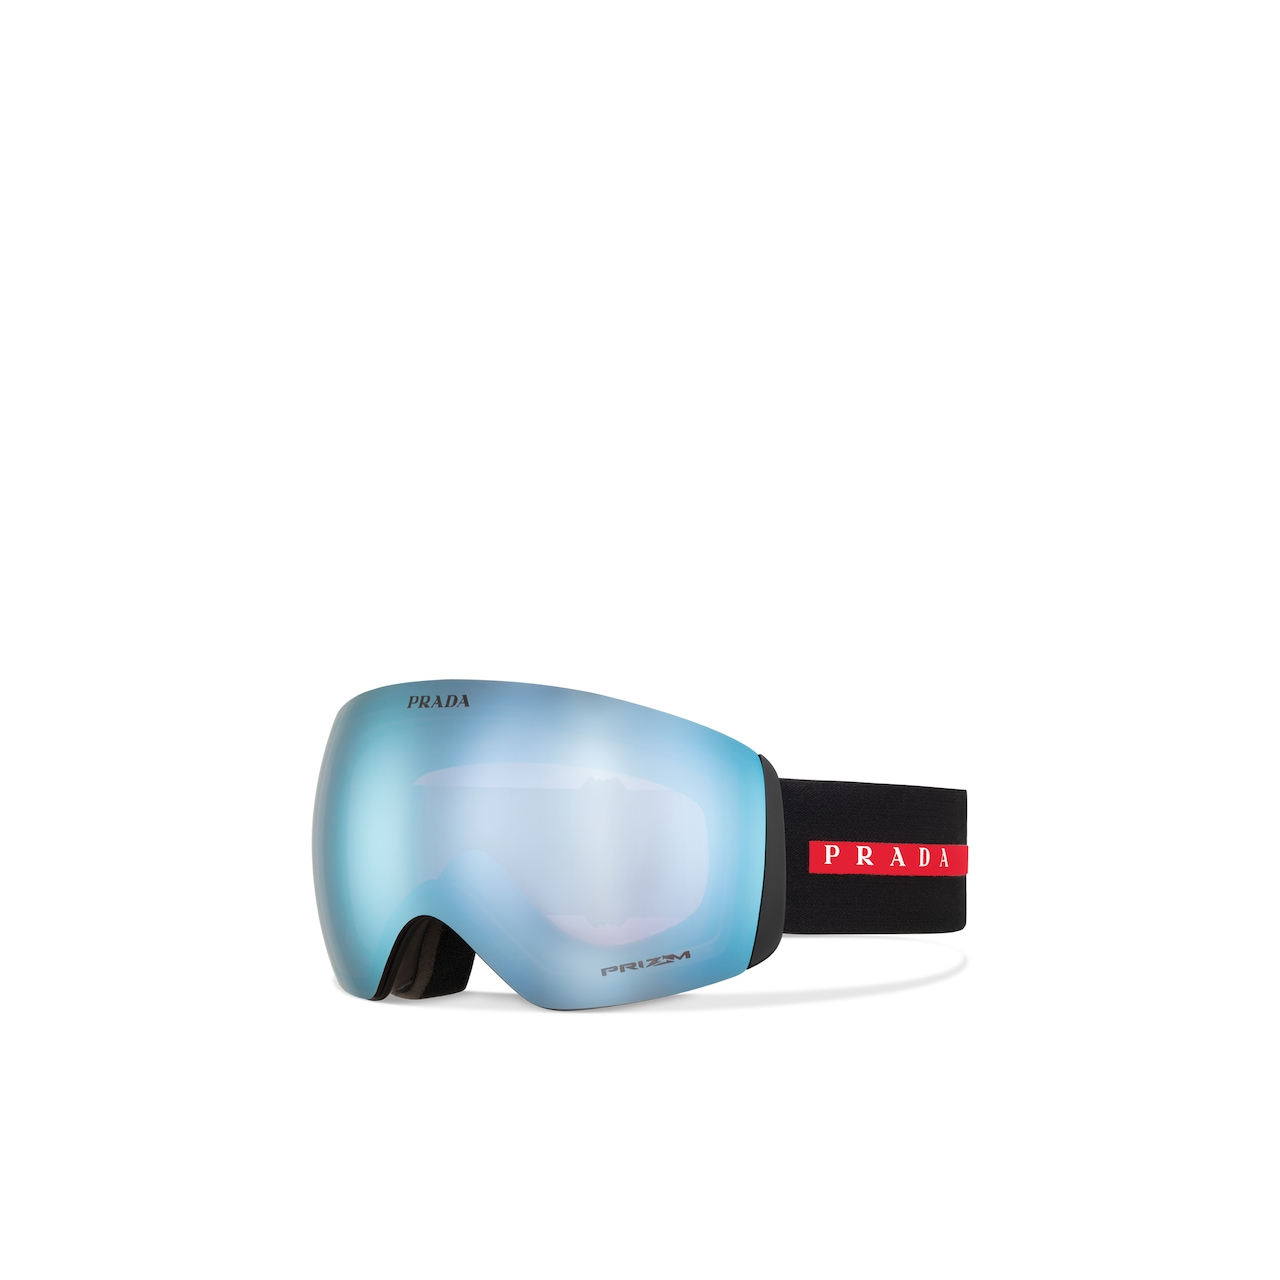 Prada Linea Rossa for Oakley snow goggle 4